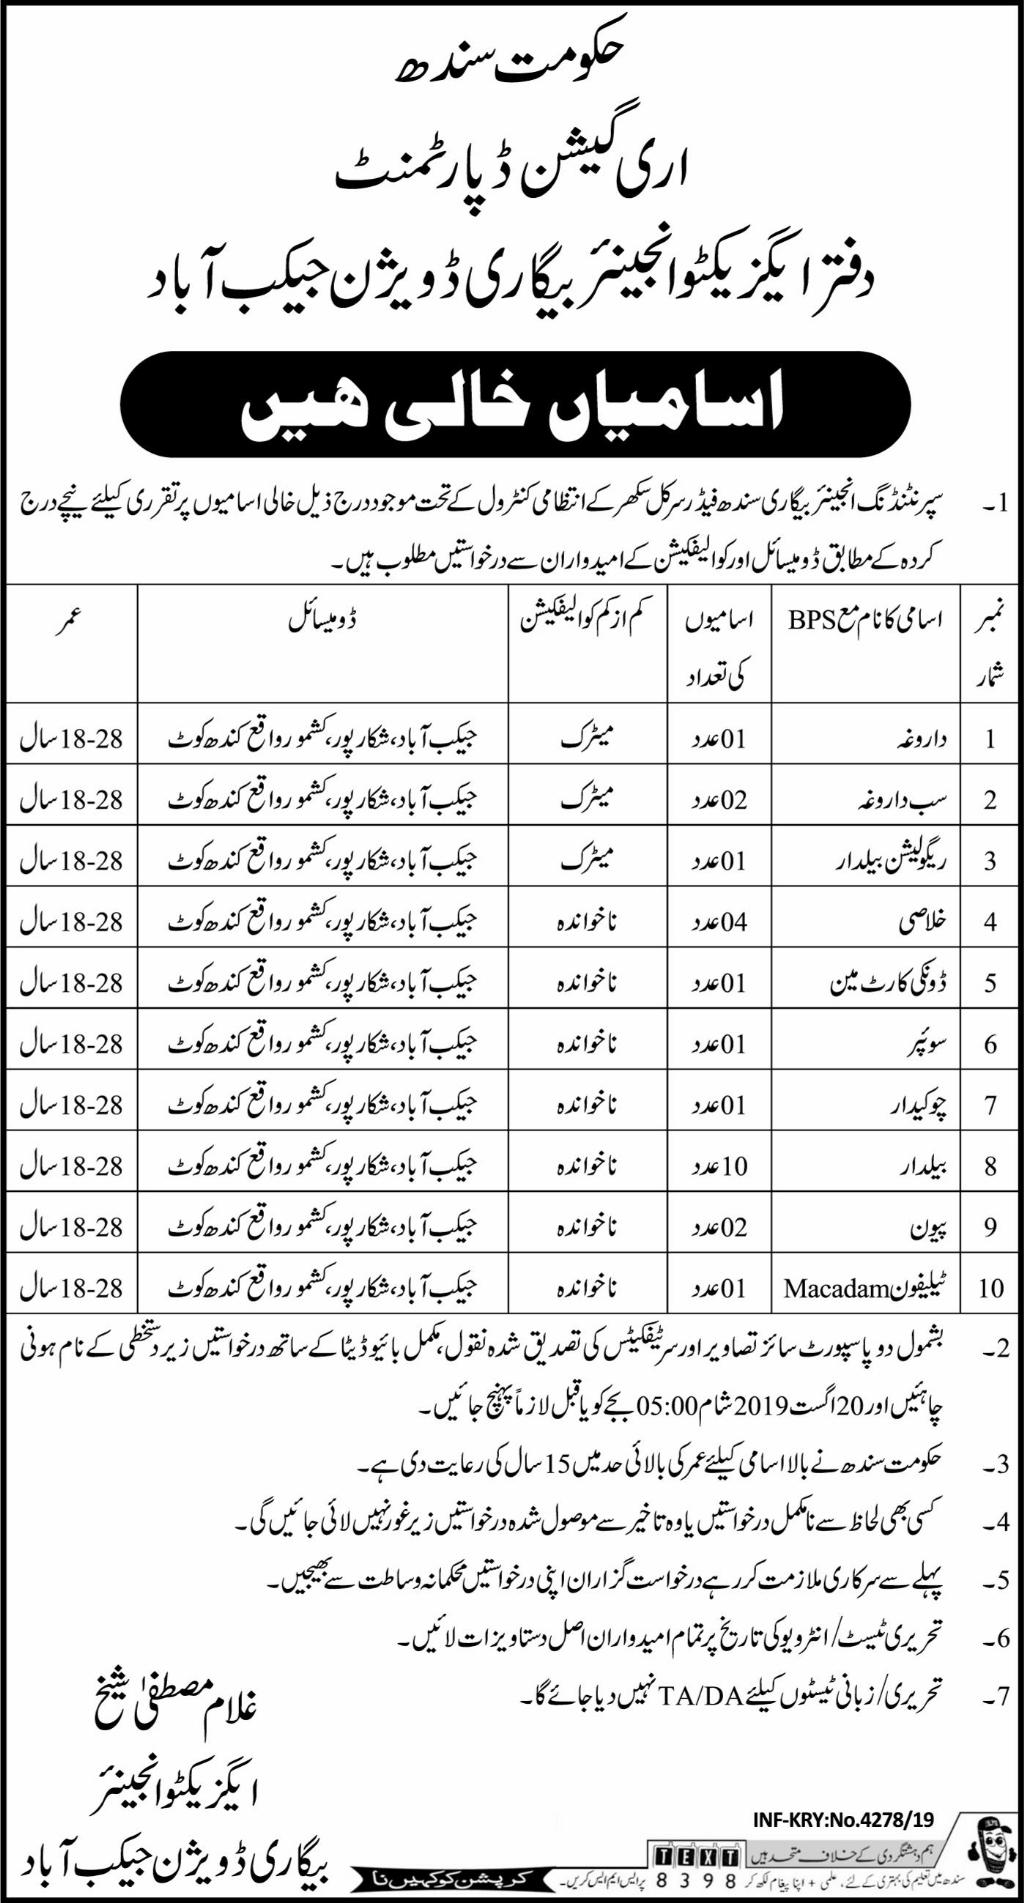 Irrigation Department Jaccobabad 04 Aug 2019 -Jobs In